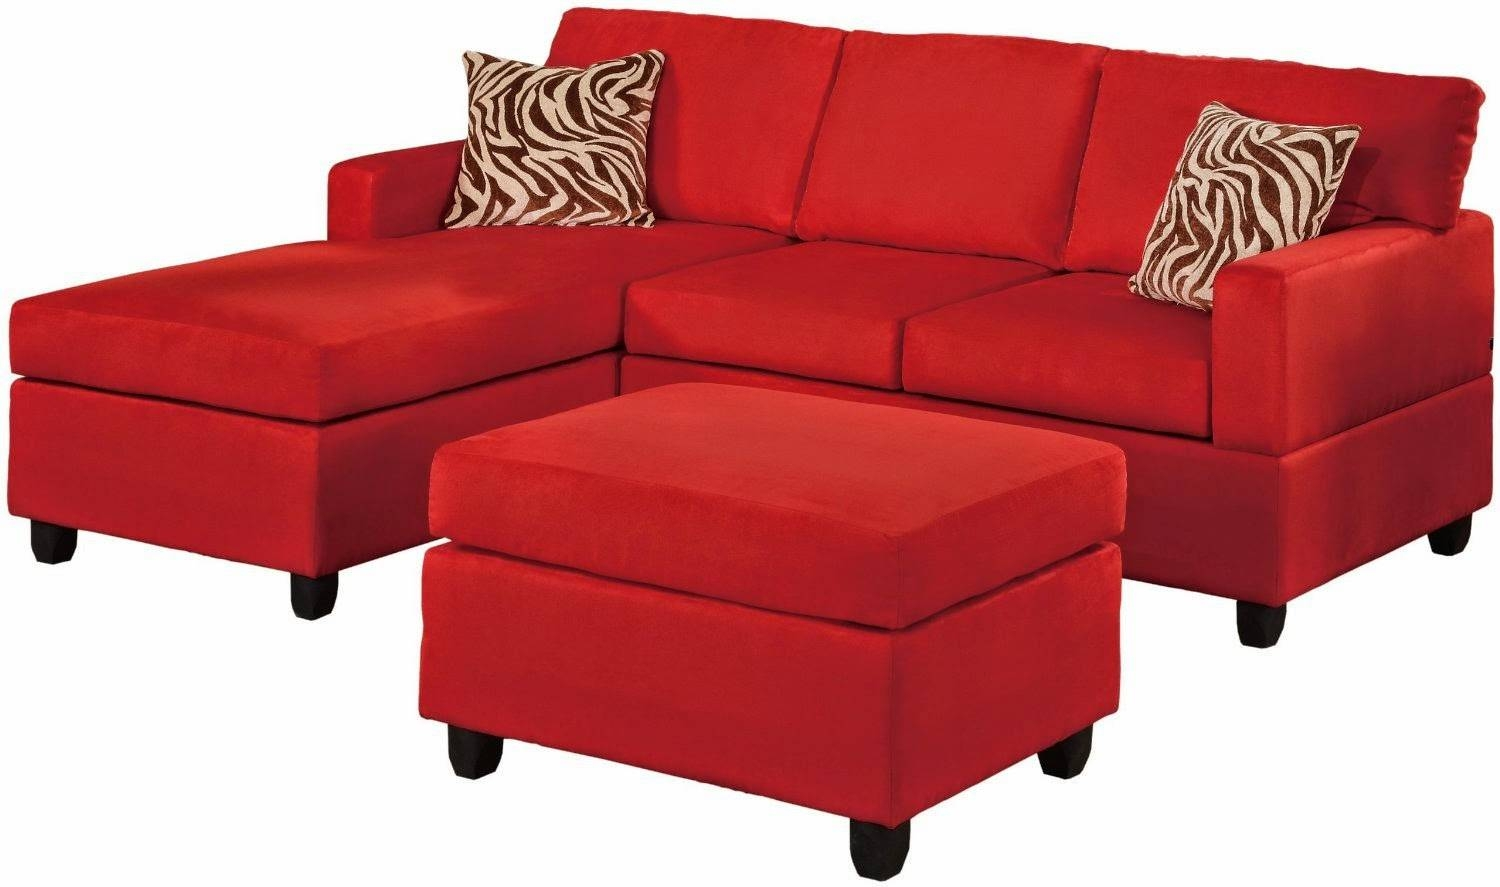 Best 30 of apartment size sofas and sectionals - Apartment size living room furniture ...